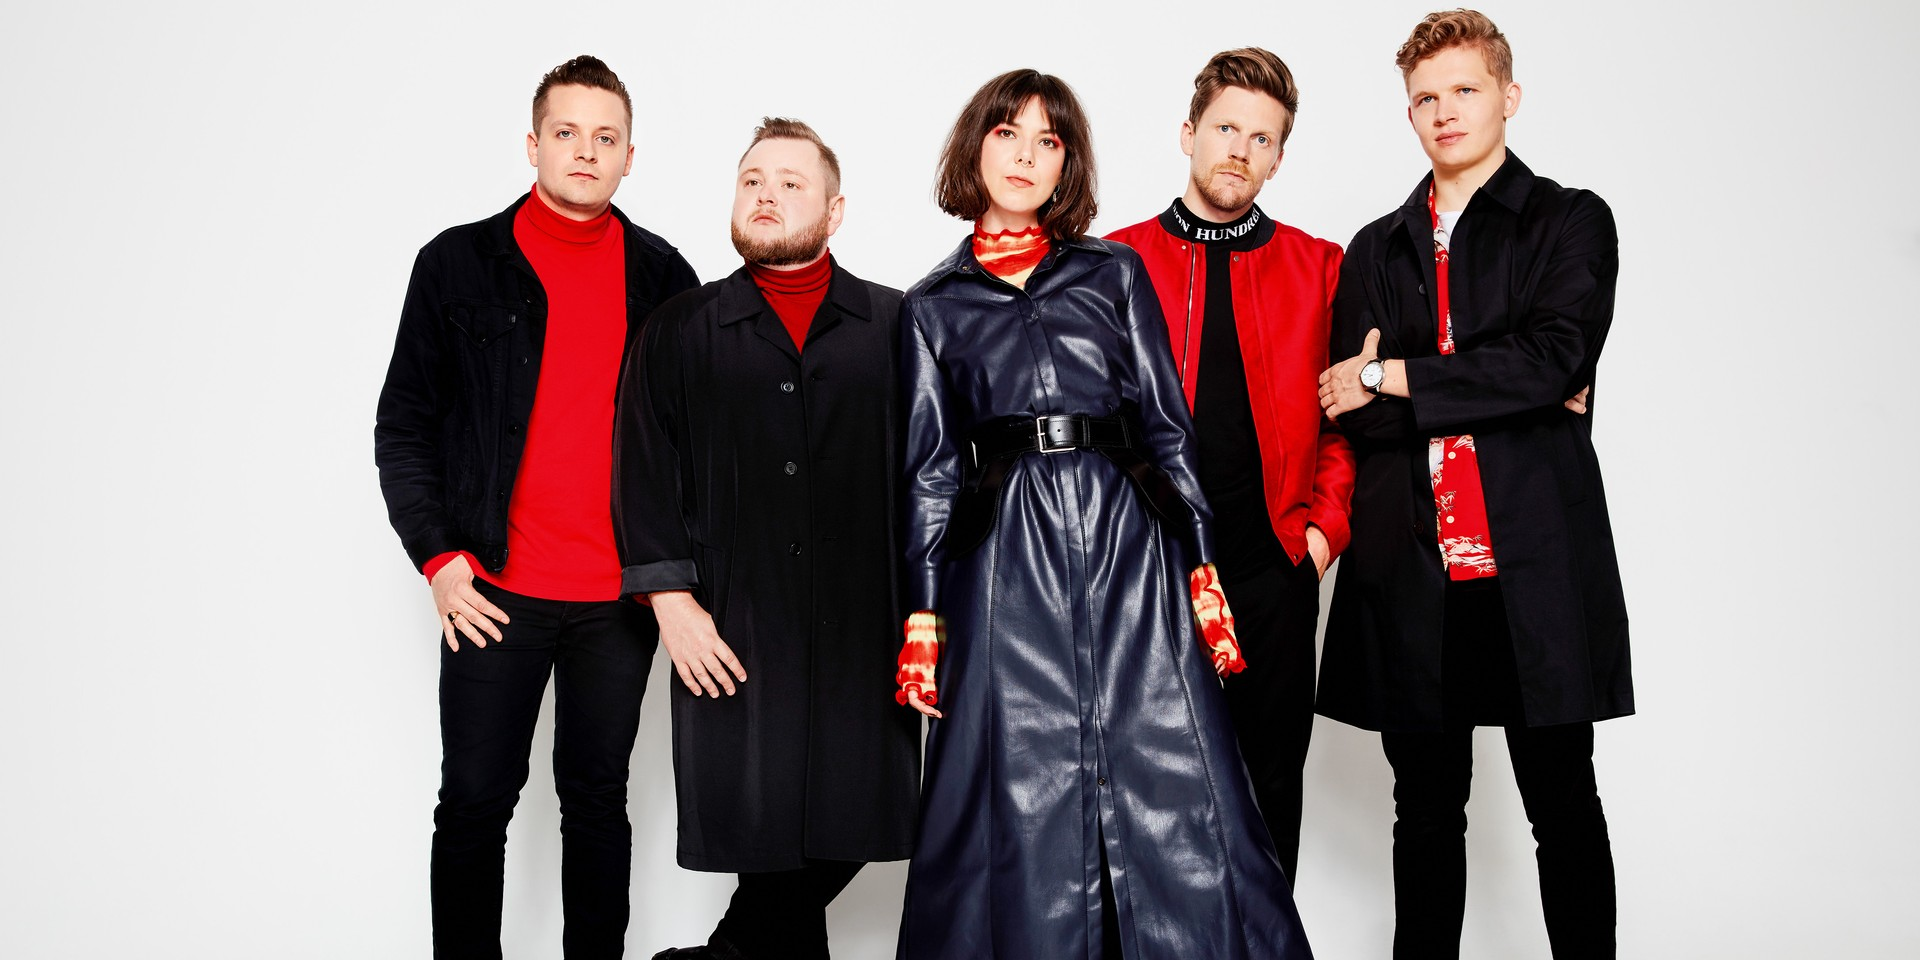 BREAKING: OF MONSTERS AND MEN announce Singapore show